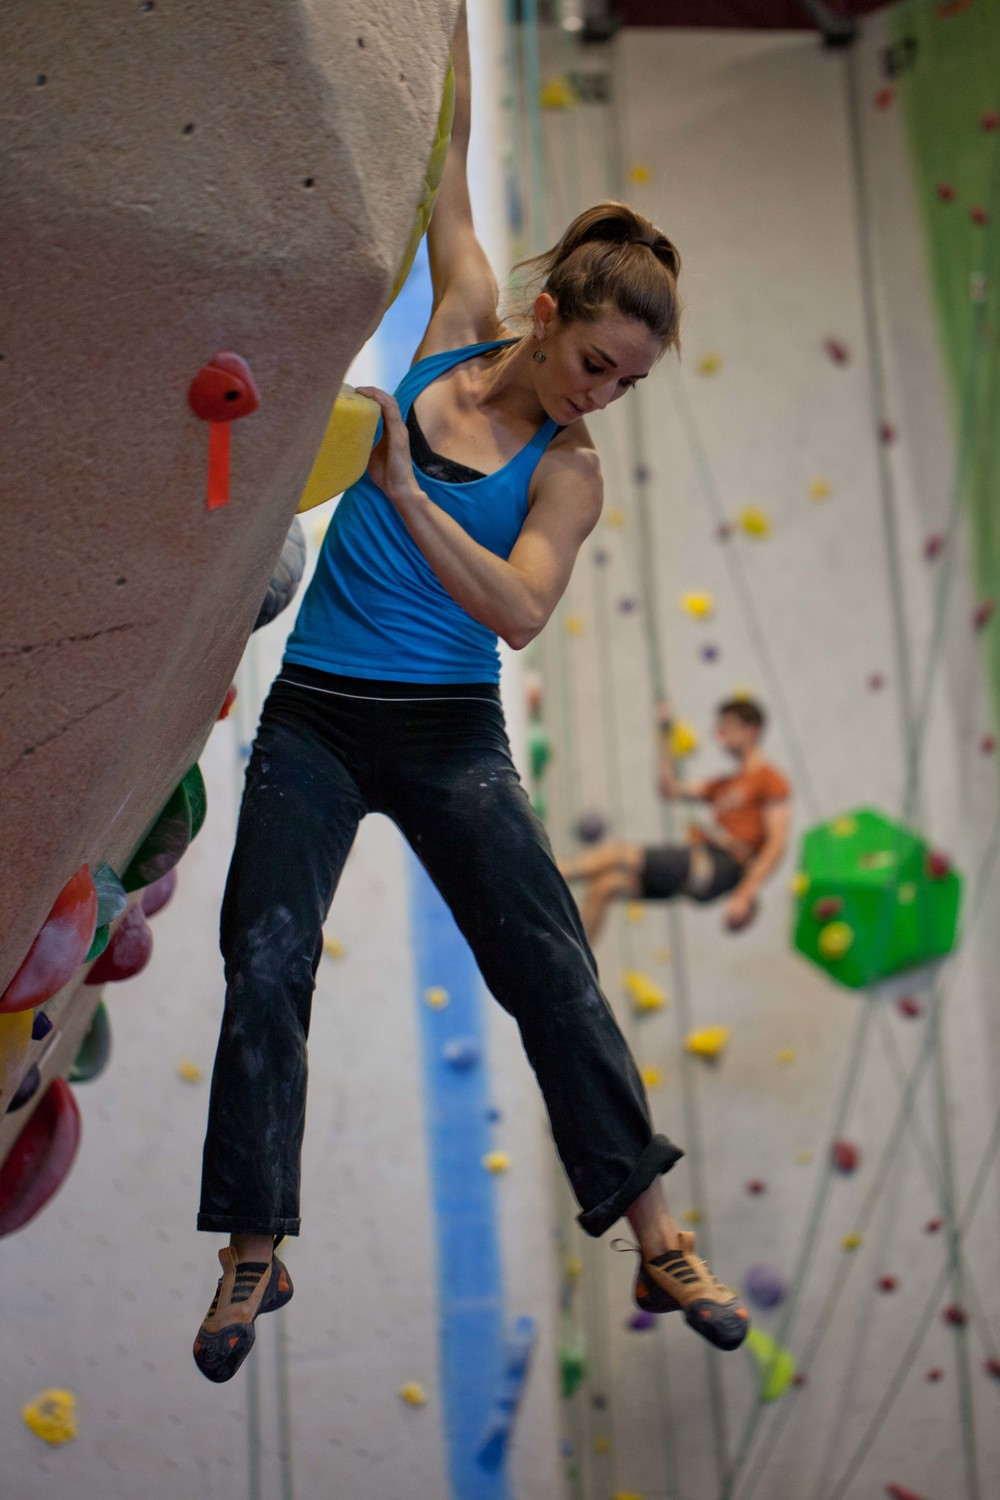 2013_08_11 Andrea climbing photos-53-18.jpg